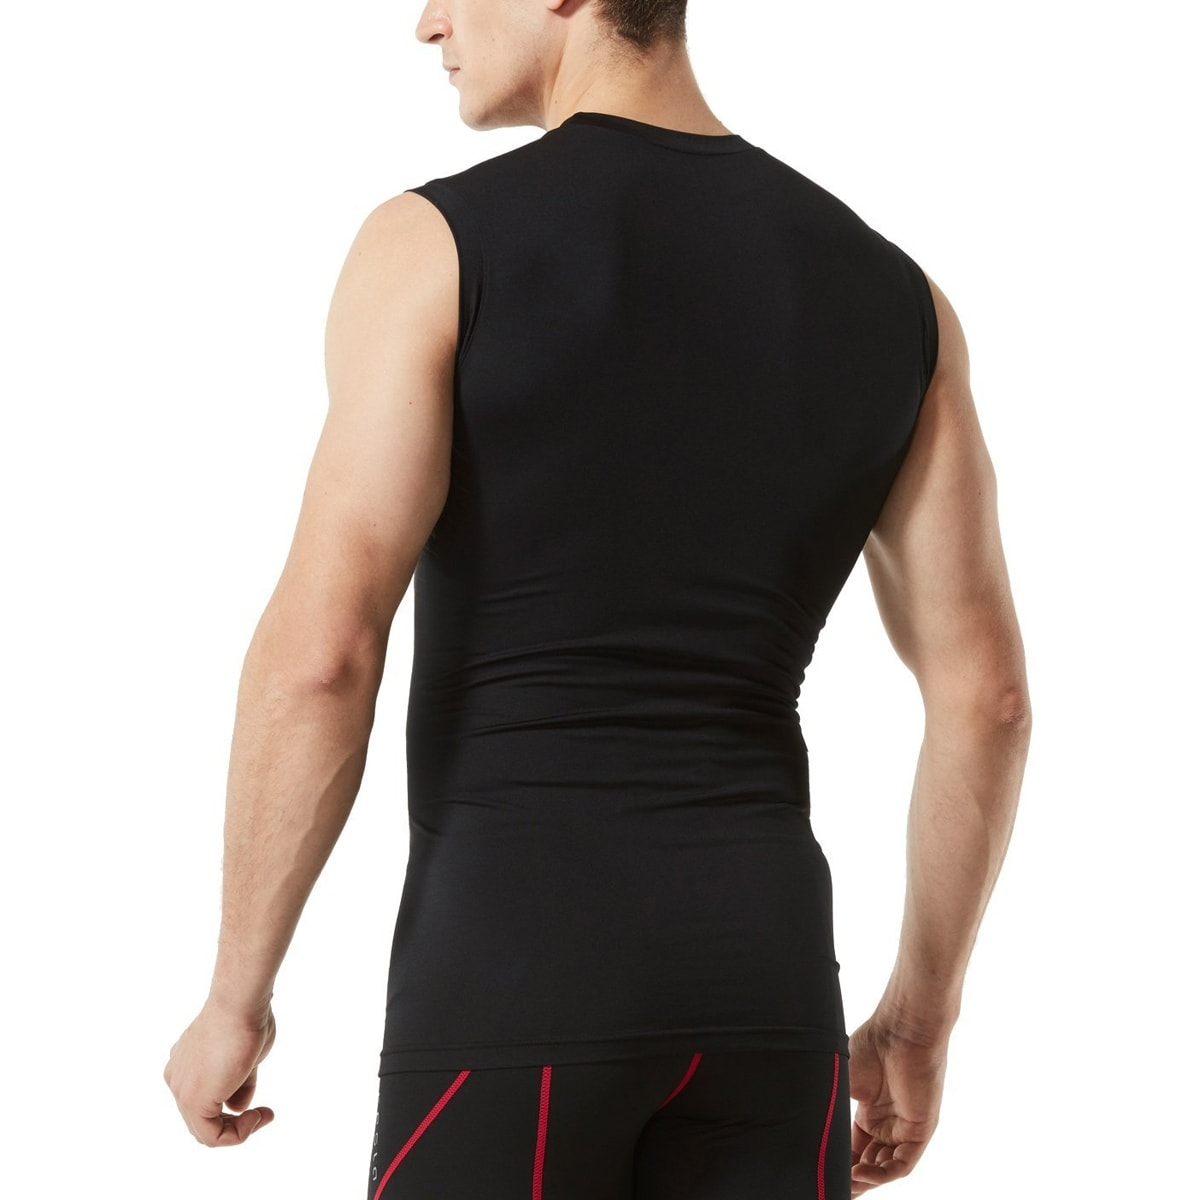 38f5308113 Shop TSLA Tesla MUA05 Baselayer Sleeveless Compression Muscle Tank Top -  Black/Red - Free Shipping On Orders Over $45 - Overstock - 18910264